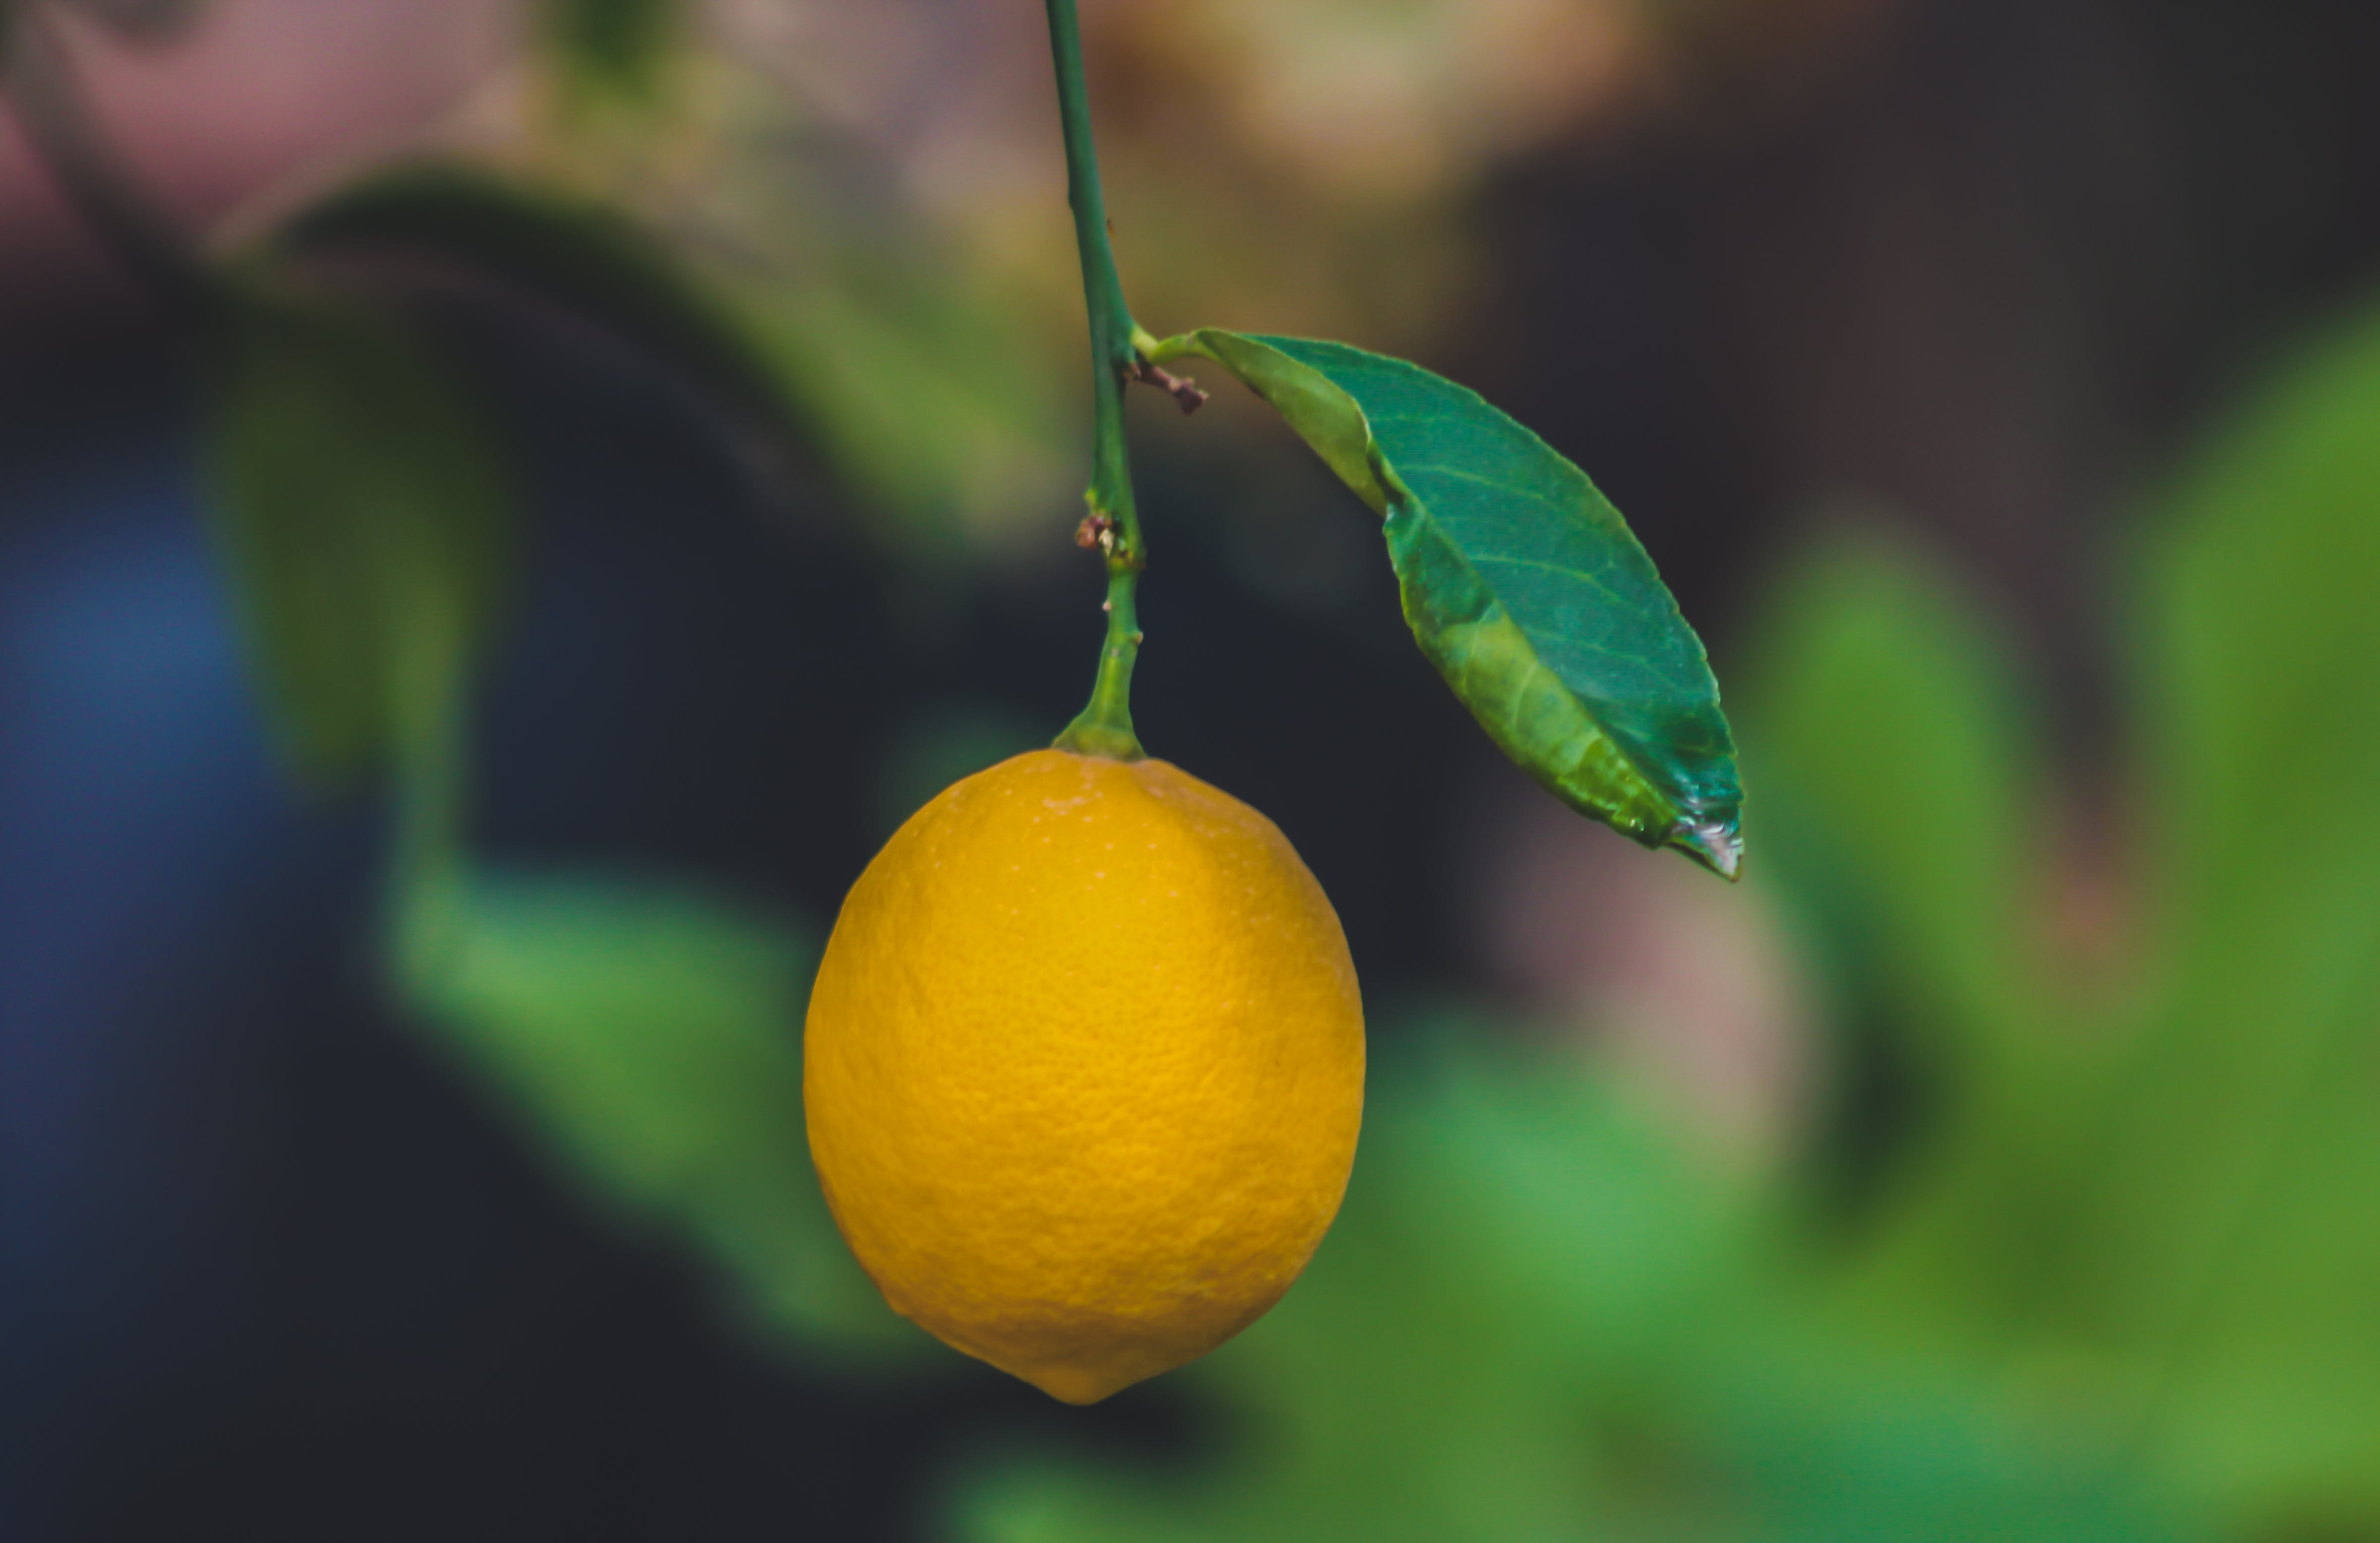 Focus Photo of a Ripe Lemon Fruit